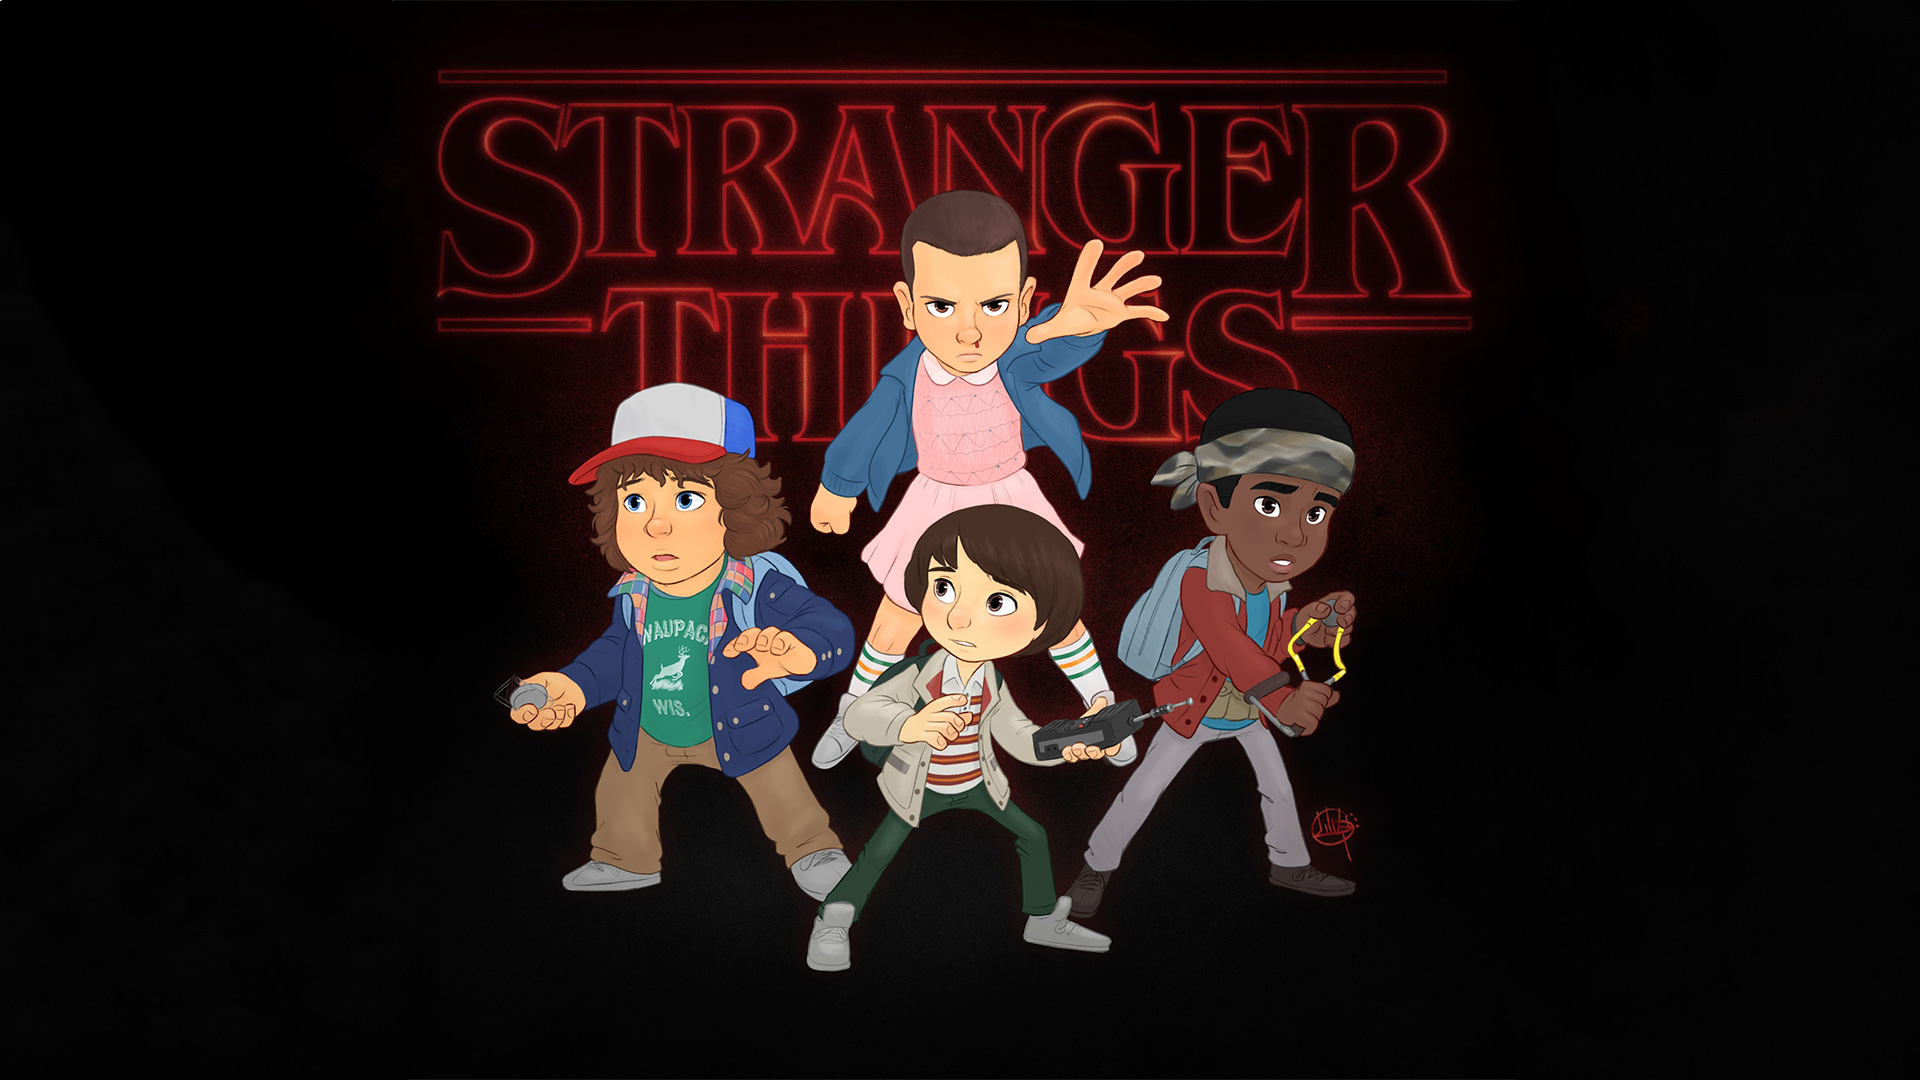 1920x1080 Stranger Things Fanart Laptop Full Hd 1080p Hd 4k